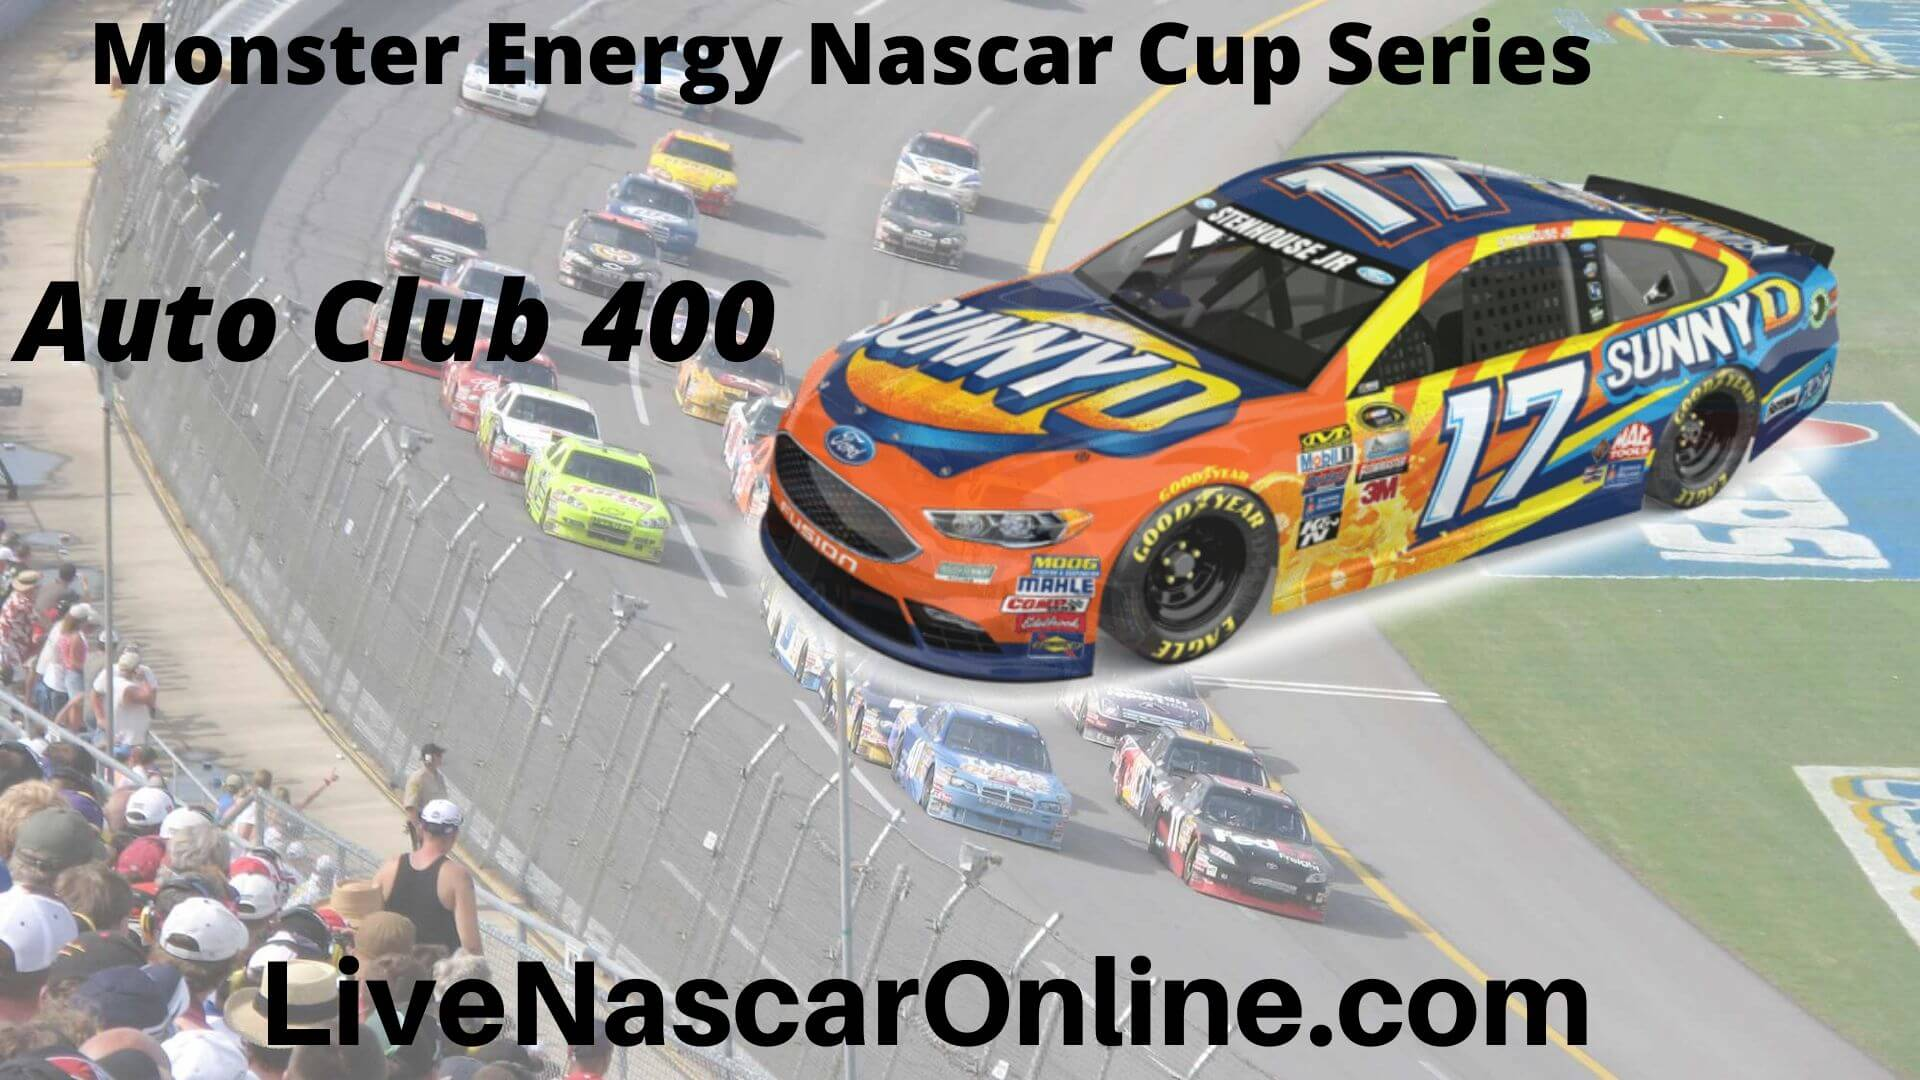 Live Auto Club 400 NASCAR Streaming